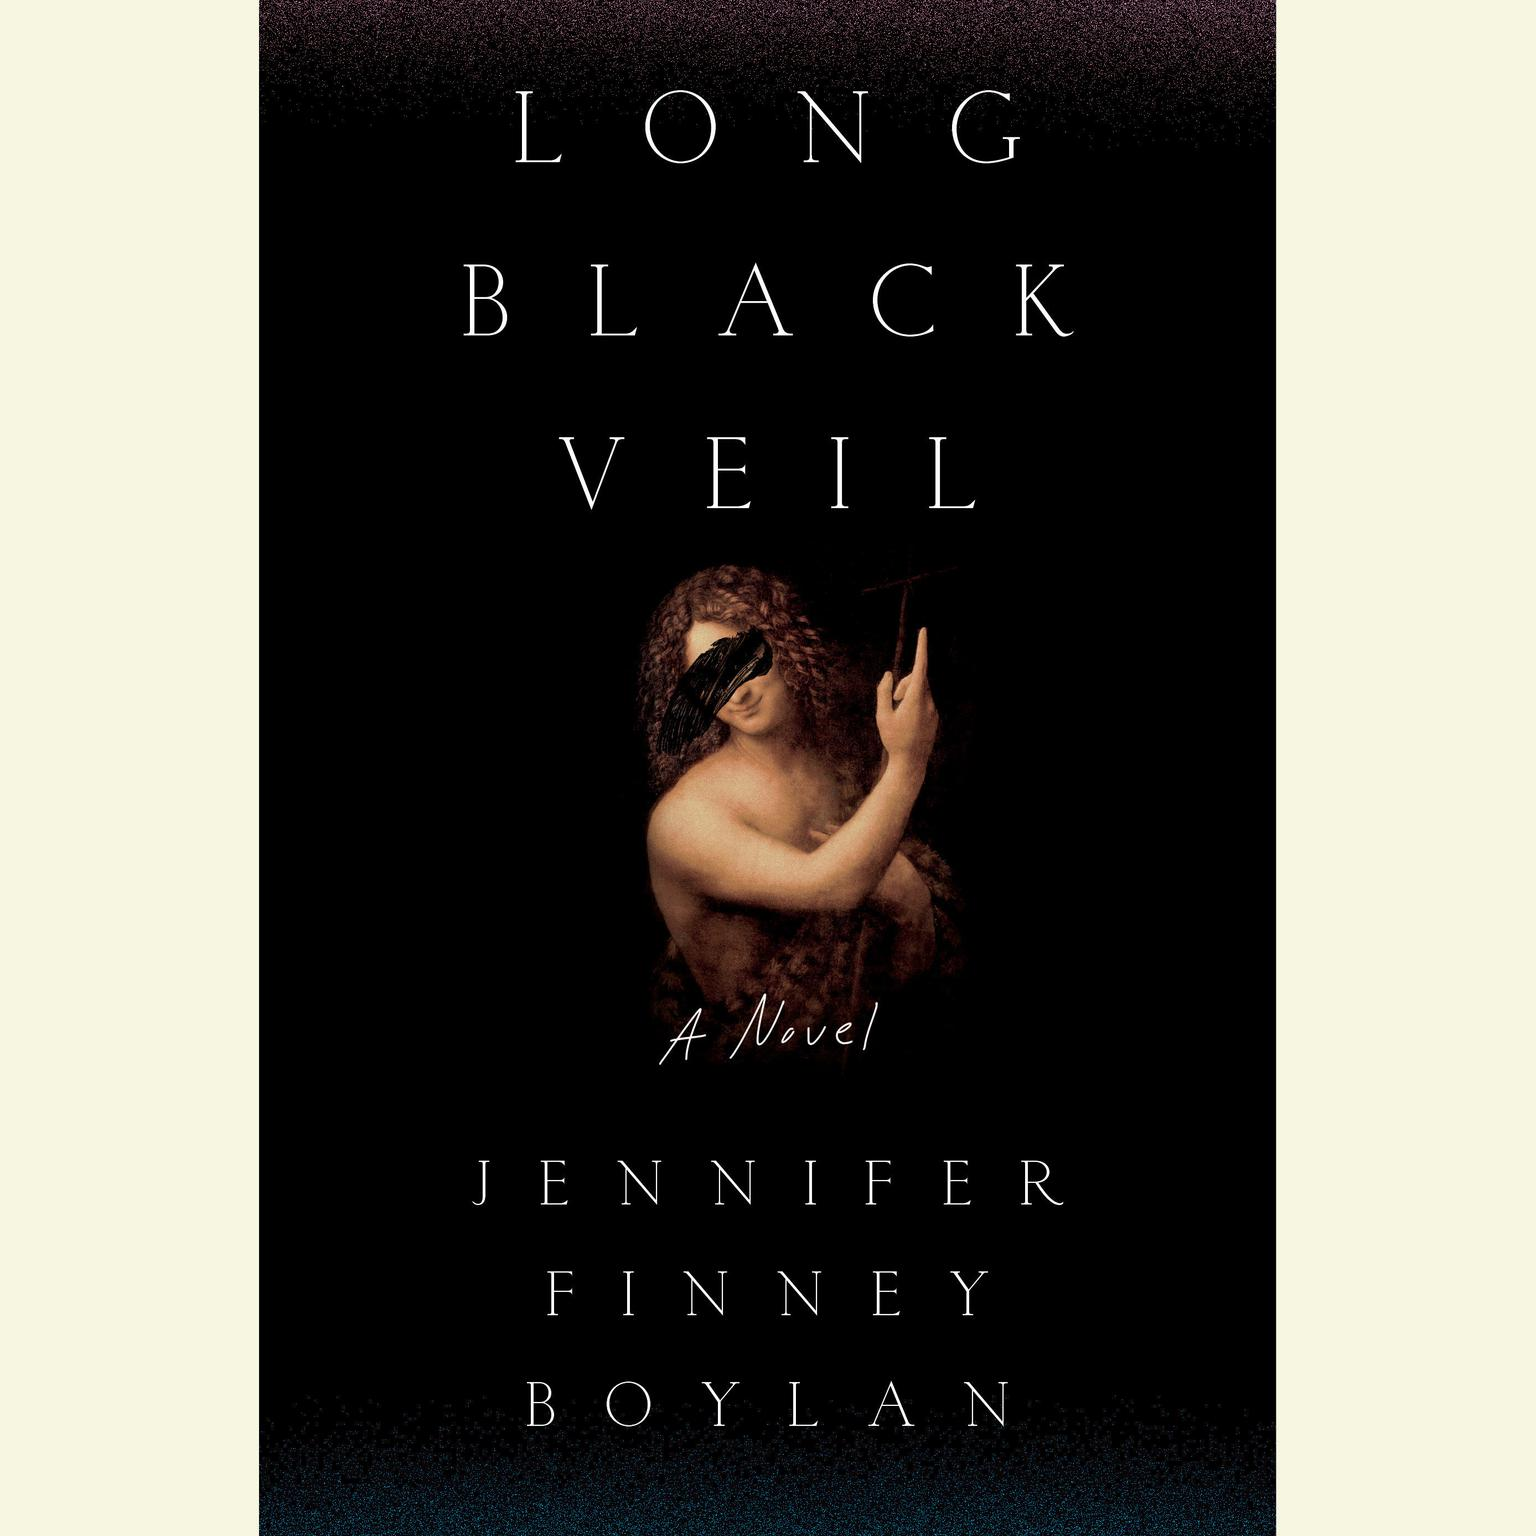 Printable Long Black Veil: A Novel Audiobook Cover Art